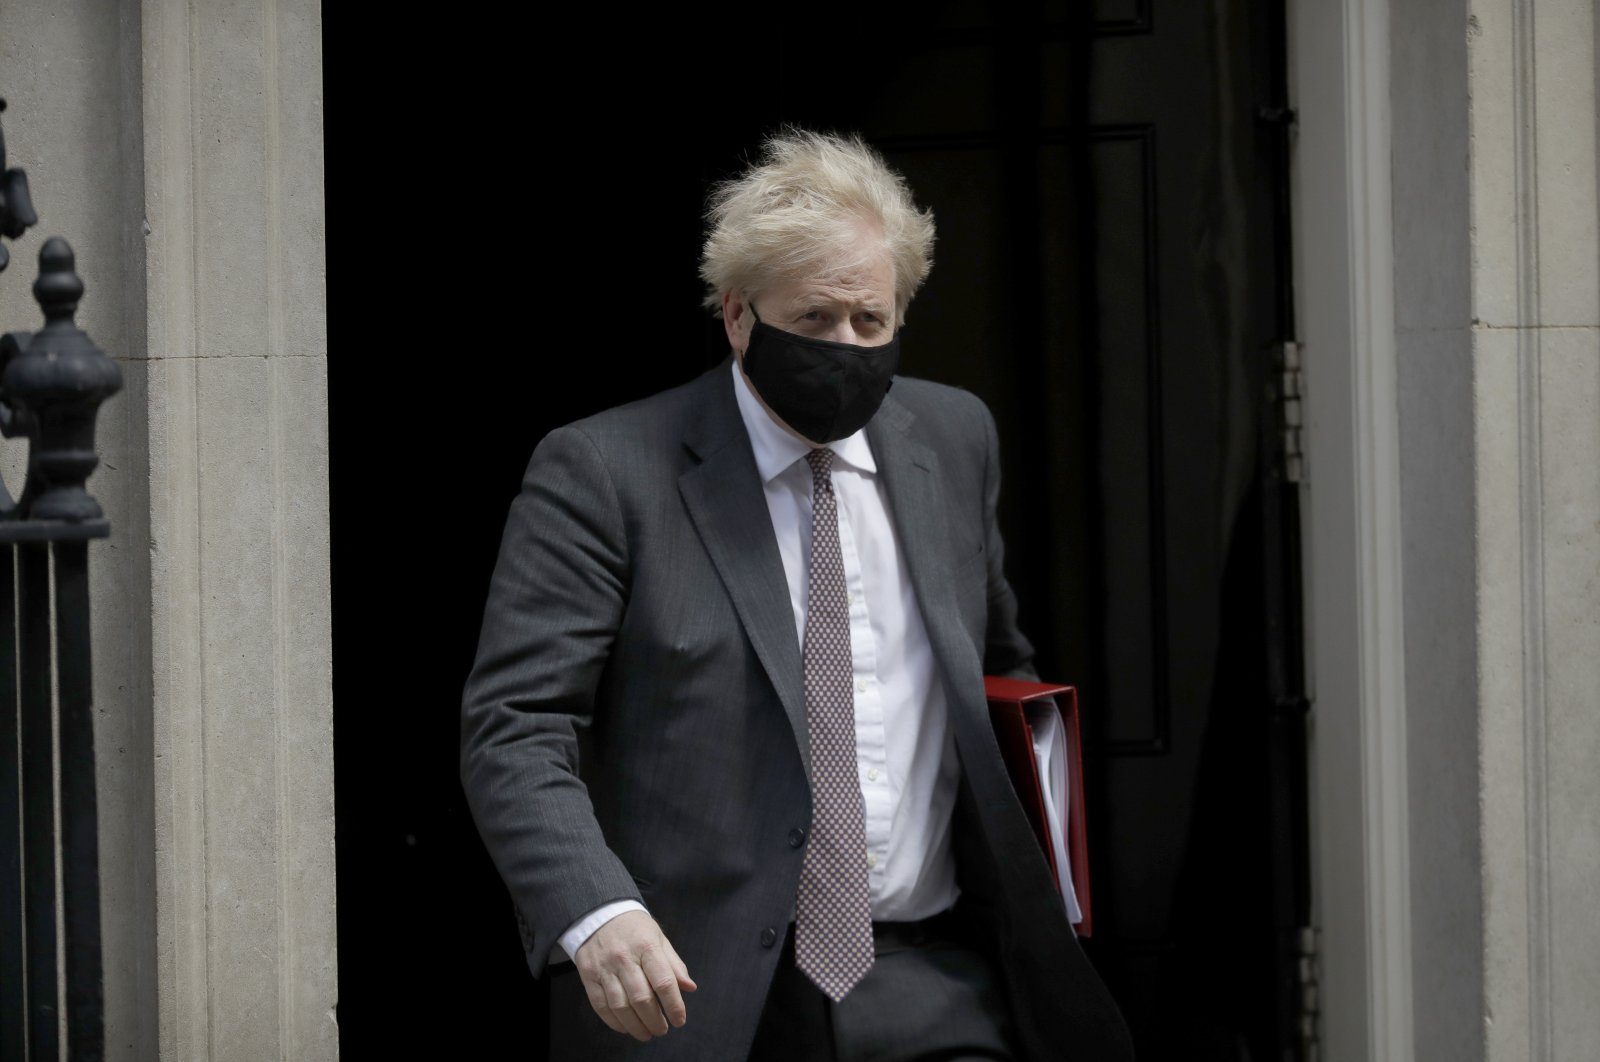 British Prime Minister Boris Johnson leaves to attend the weekly Prime Minister's Questions at the Houses of Parliament from 10 Downing Street, in London, England, April 21, 2021. (AP Photo)